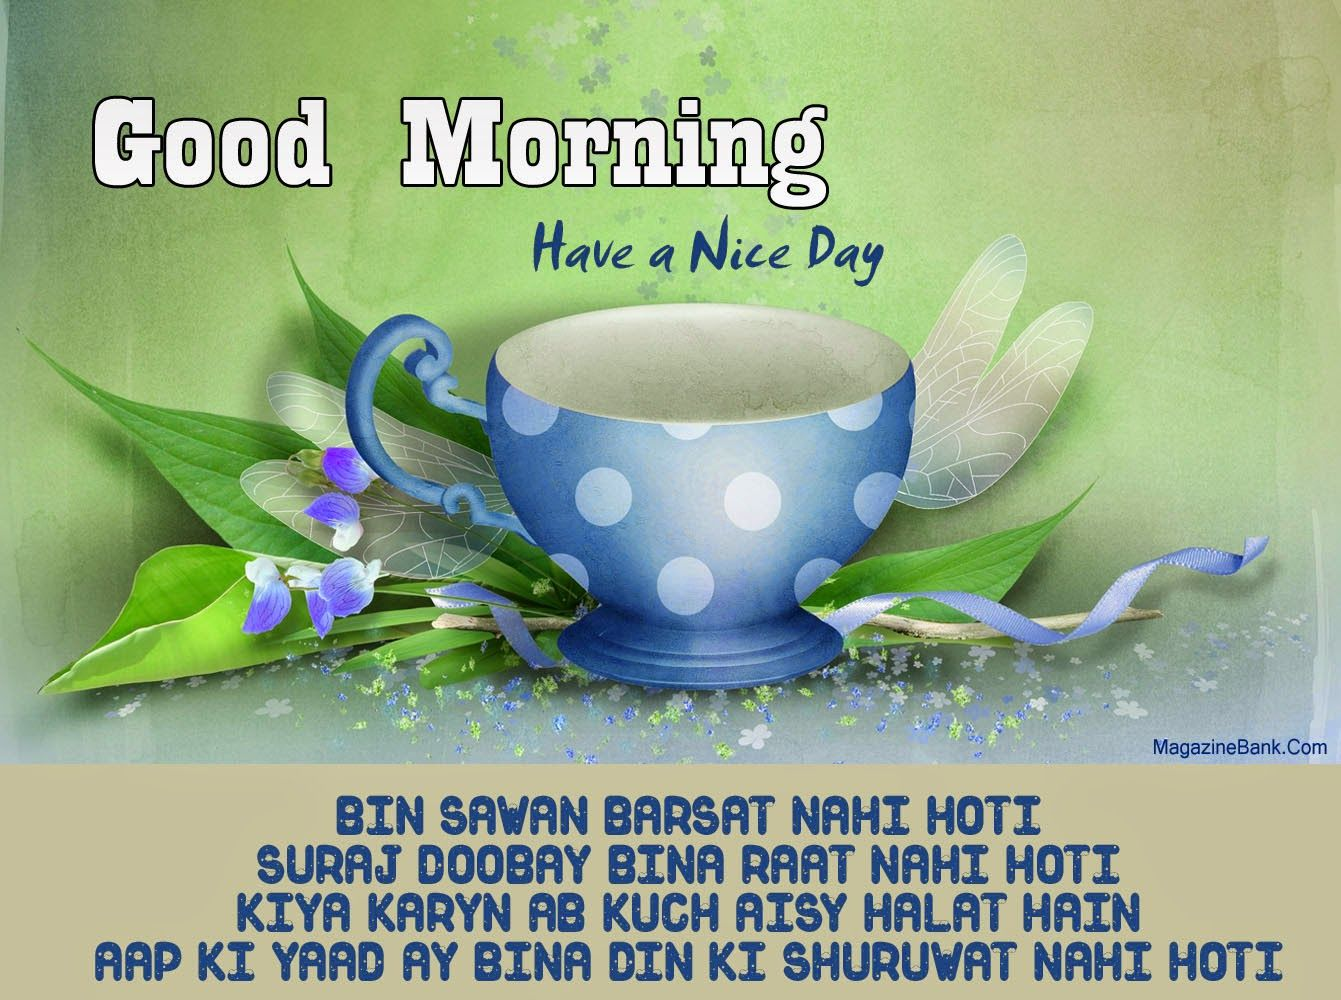 Good Morning Sprüche Sms : Good morning sms text messages in hindi shayari